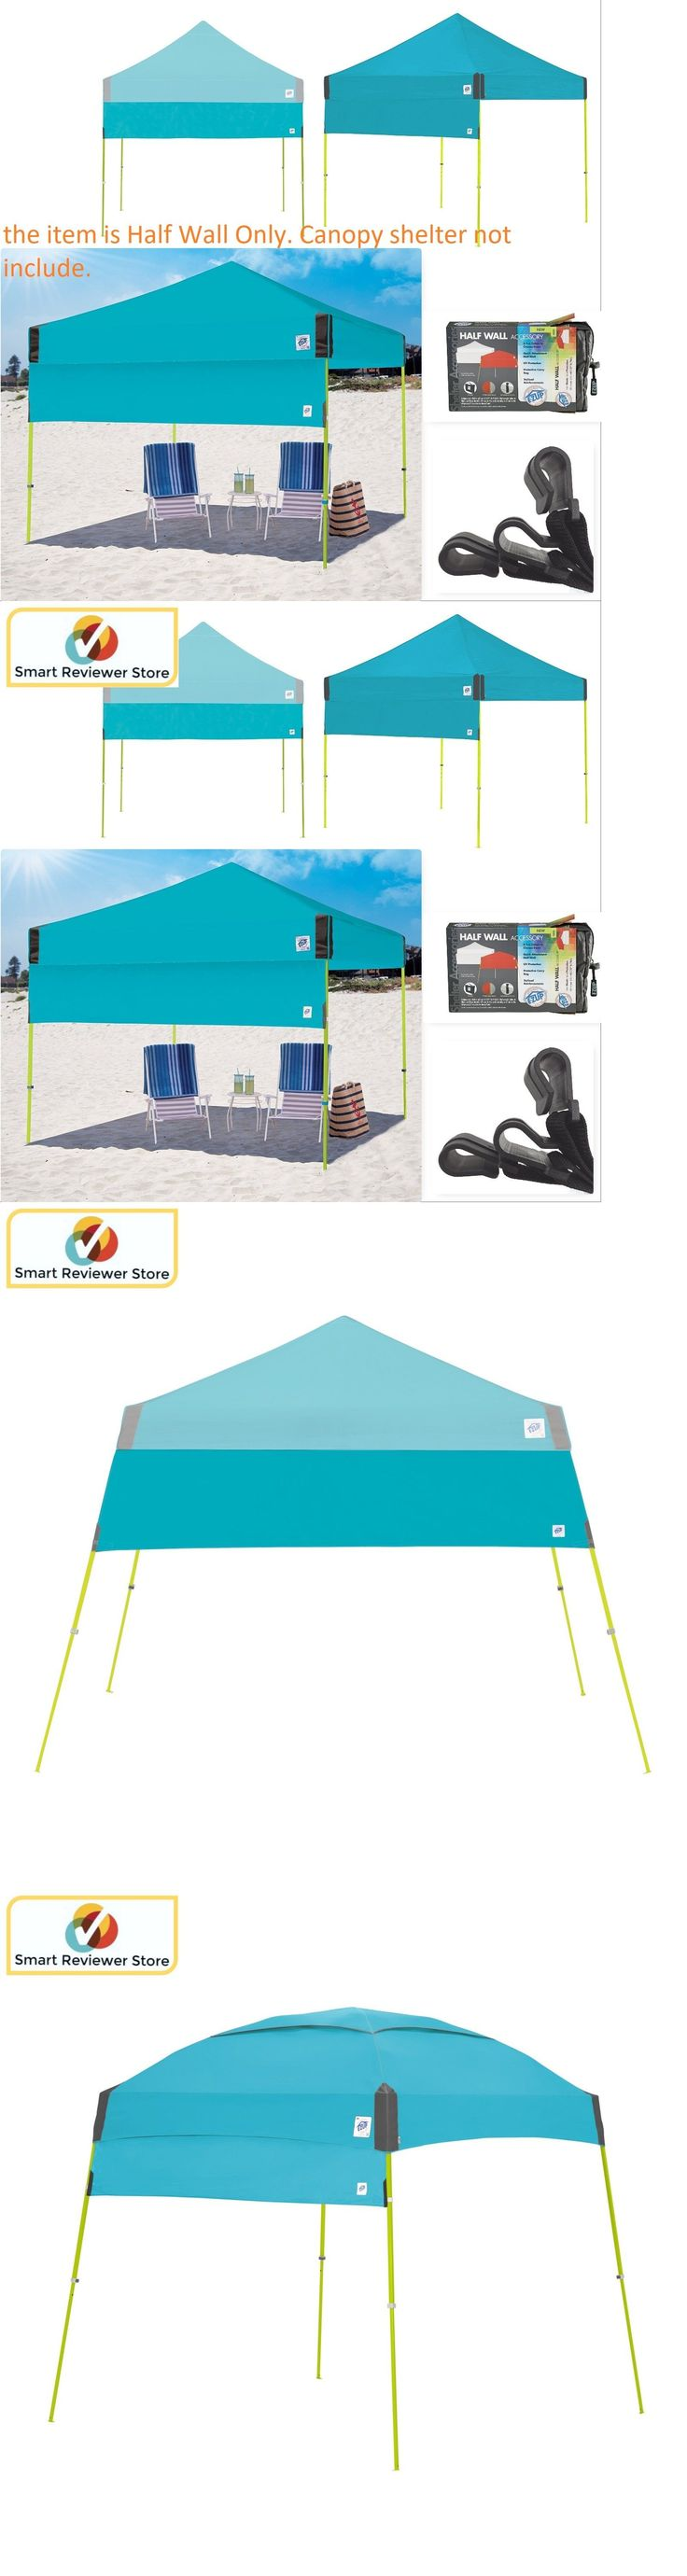 Canopies and Shelters 179011: Instant Canopy Tent 10X10 Half Wall Outdoor Pop Up Gazebo Patio Beach Sun Shade -> BUY IT NOW ONLY: $46.11 on eBay!